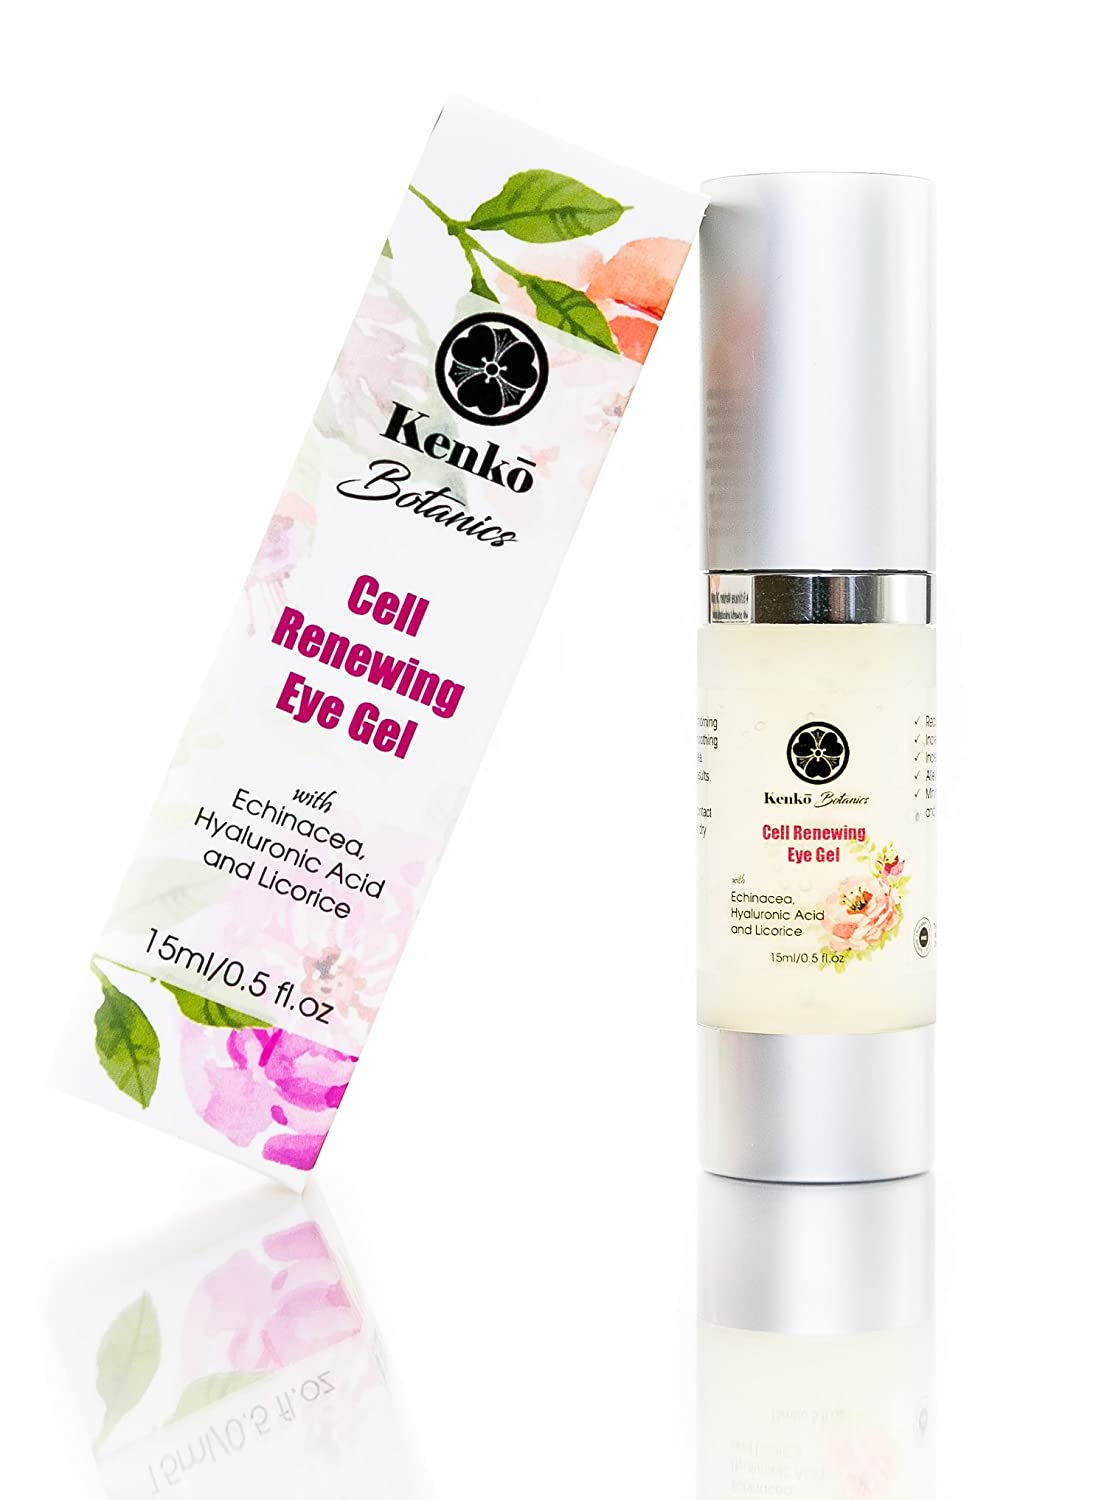 3. Kenko Botanics Cell Renewing Eye Gel